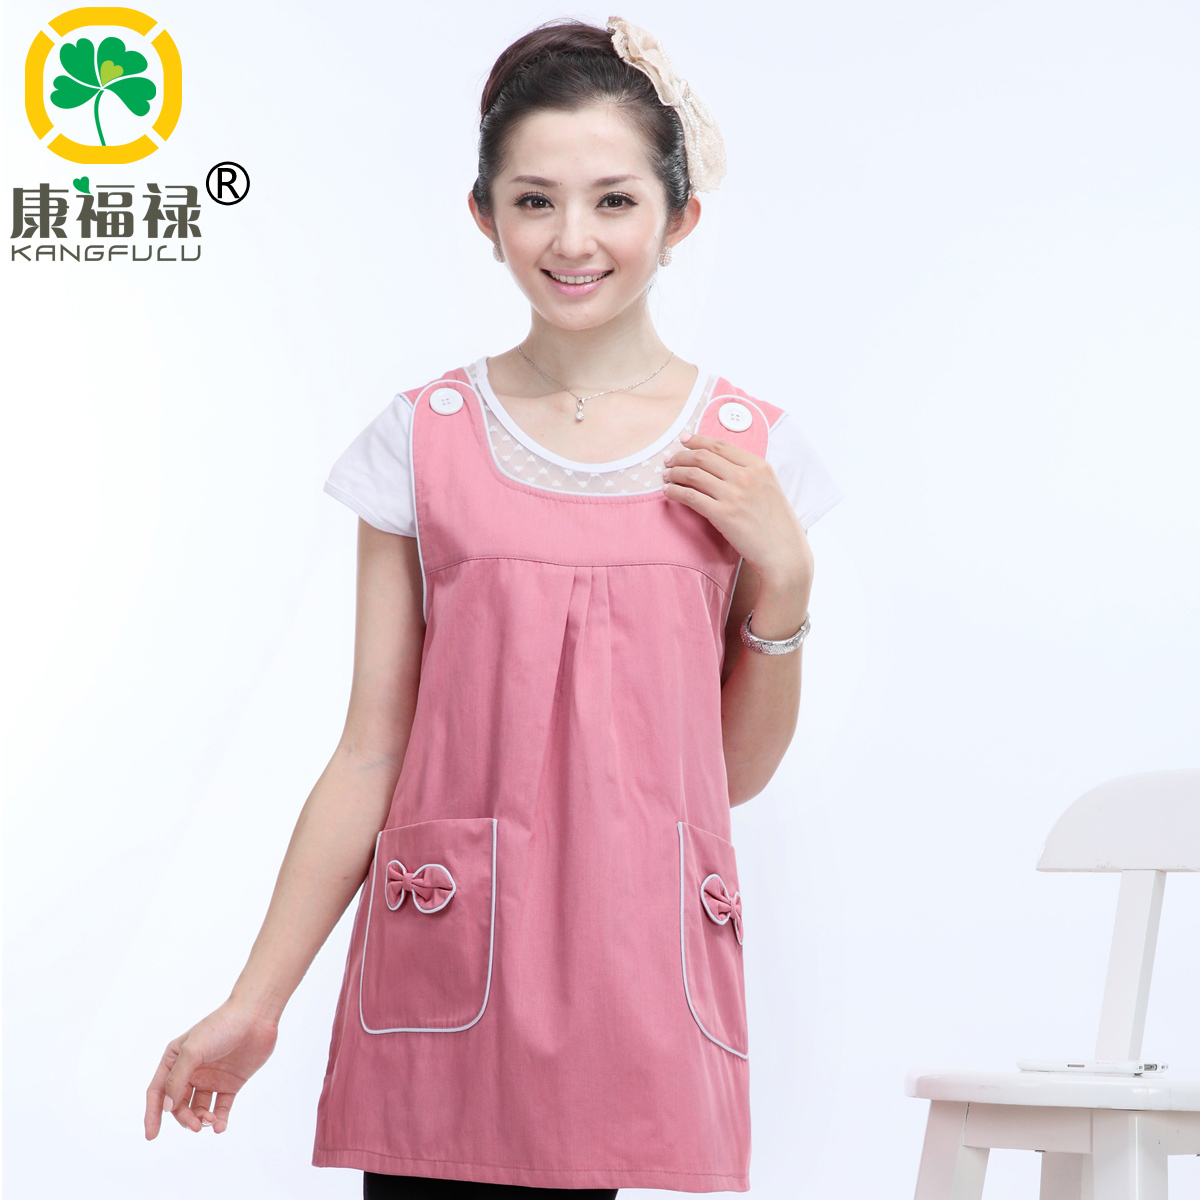 Radiation-resistant maternity clothing maternity radiation-resistant vest